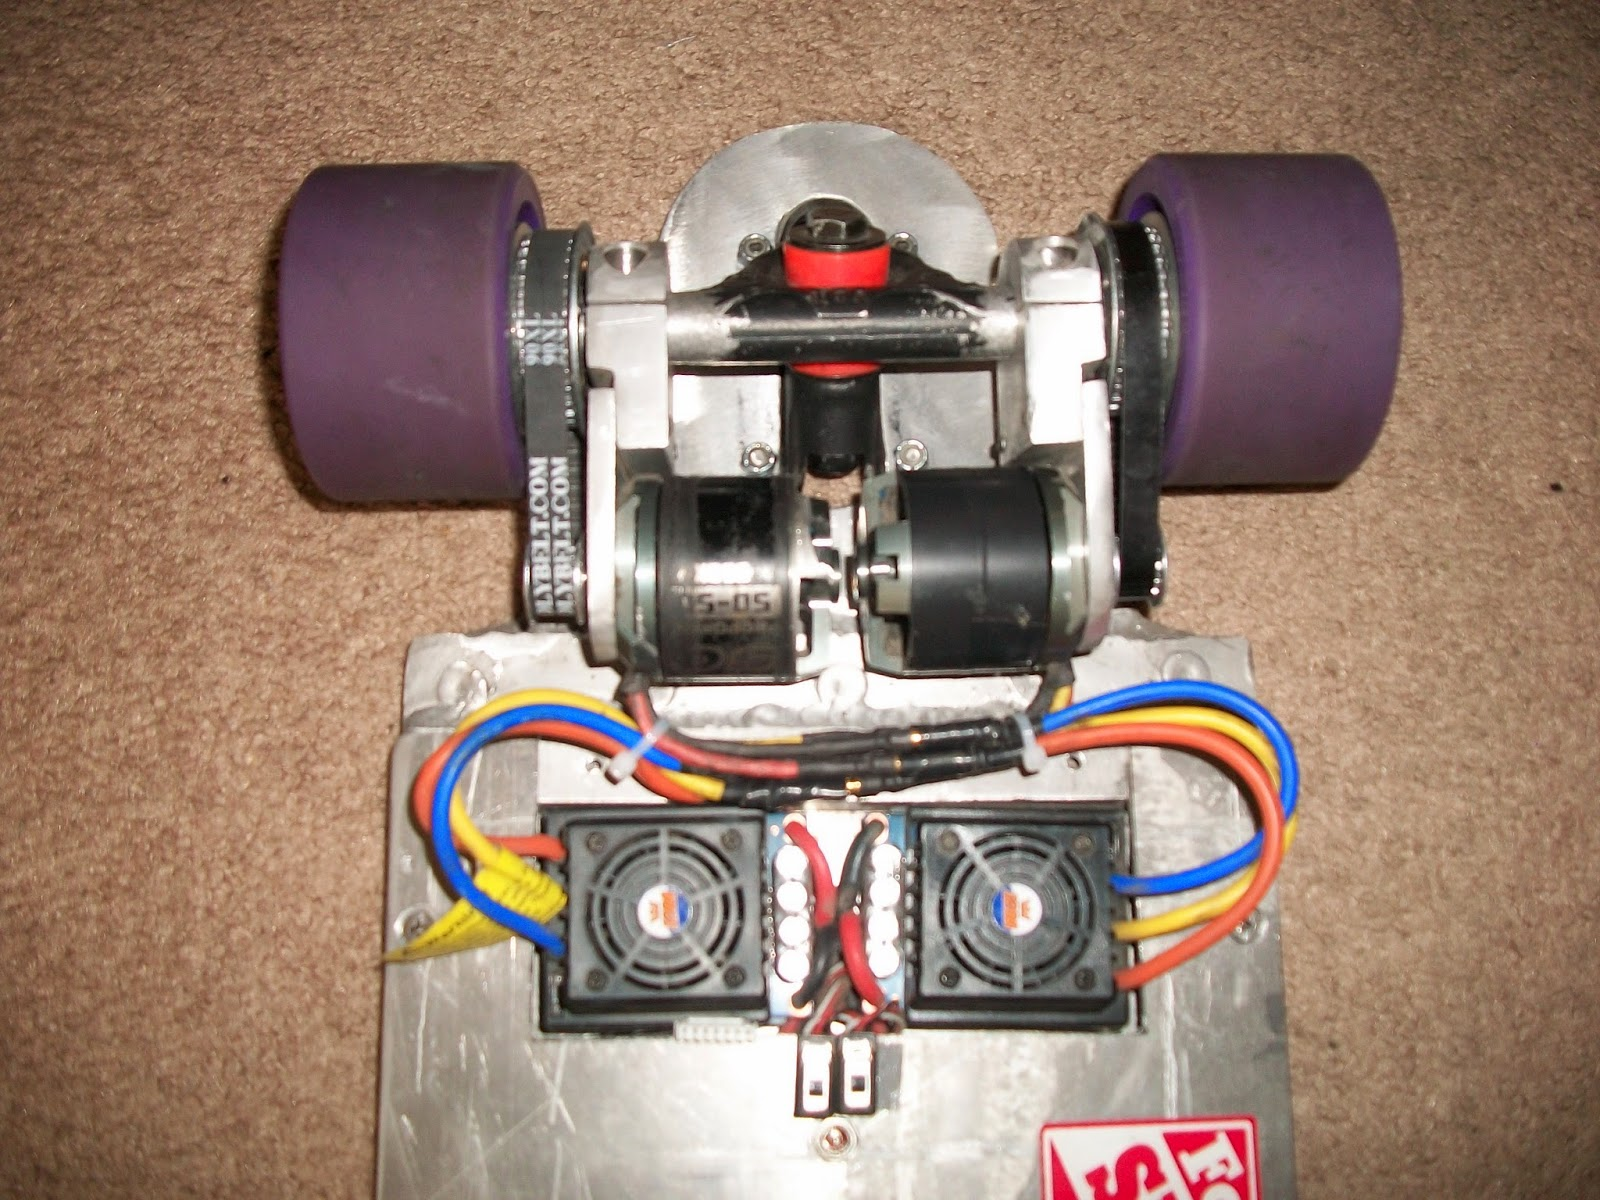 Electric Longboard Project Installed Motor Controllers